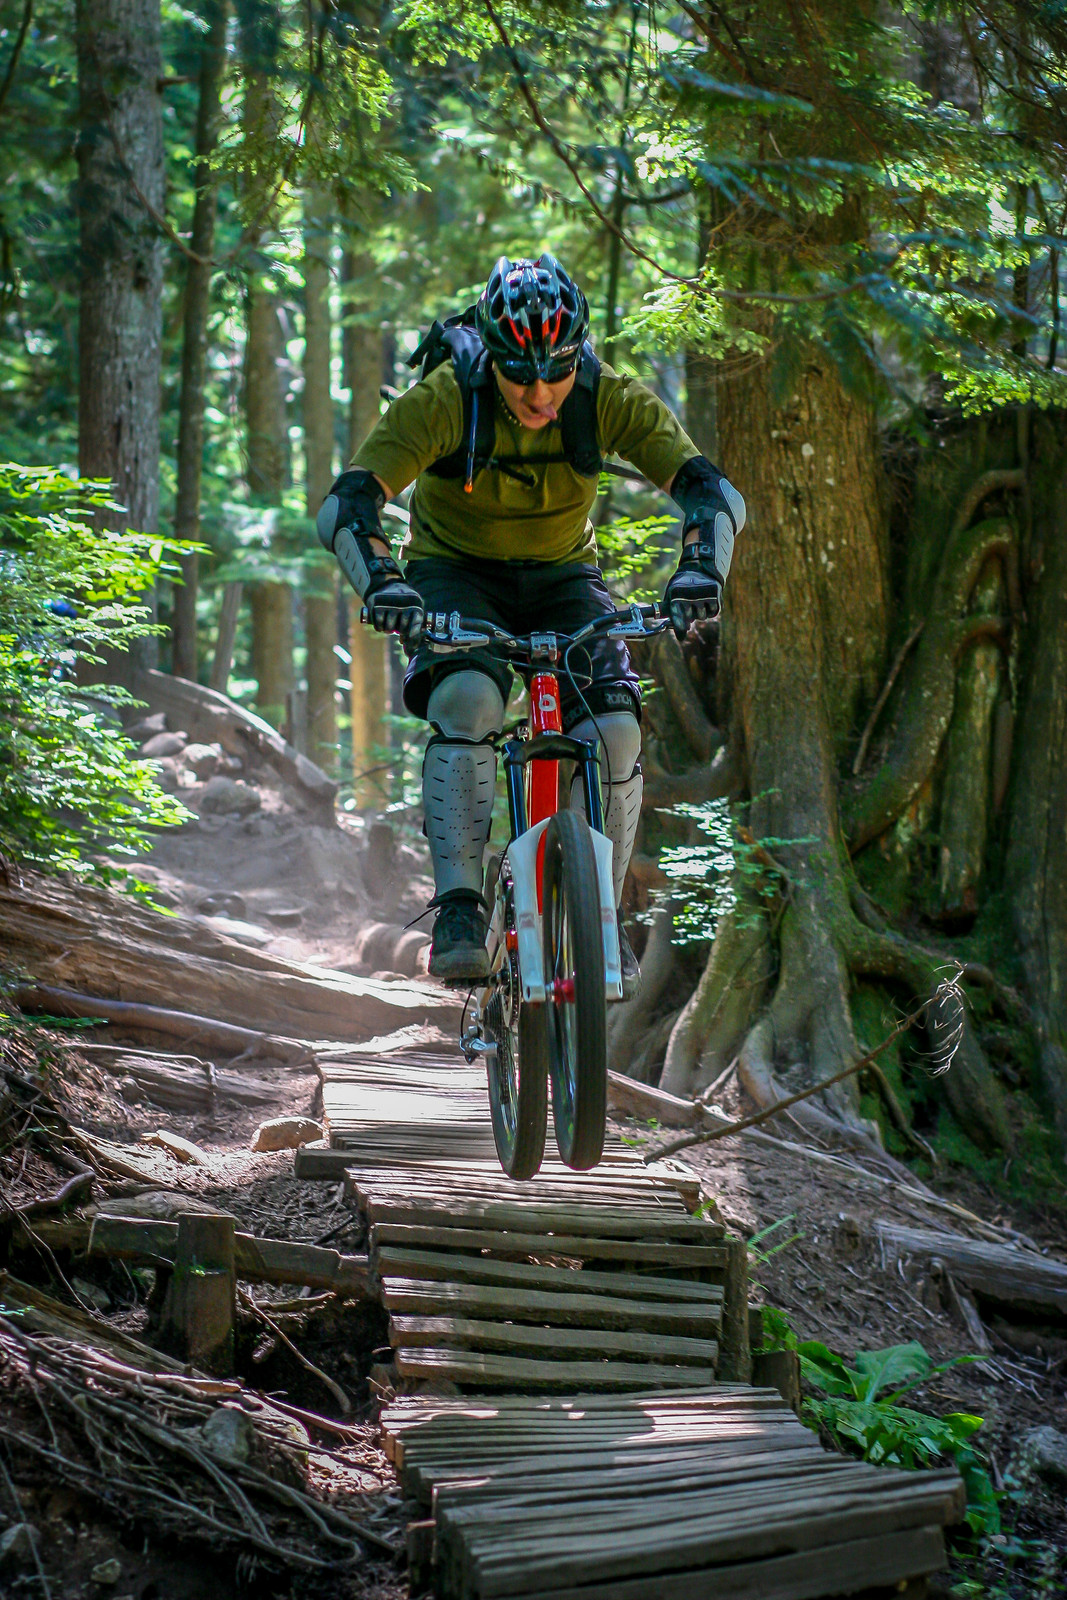 NS Oldschool (1 of 1) - Malcolm Mclaws - Mountain Biking Pictures - Vital MTB